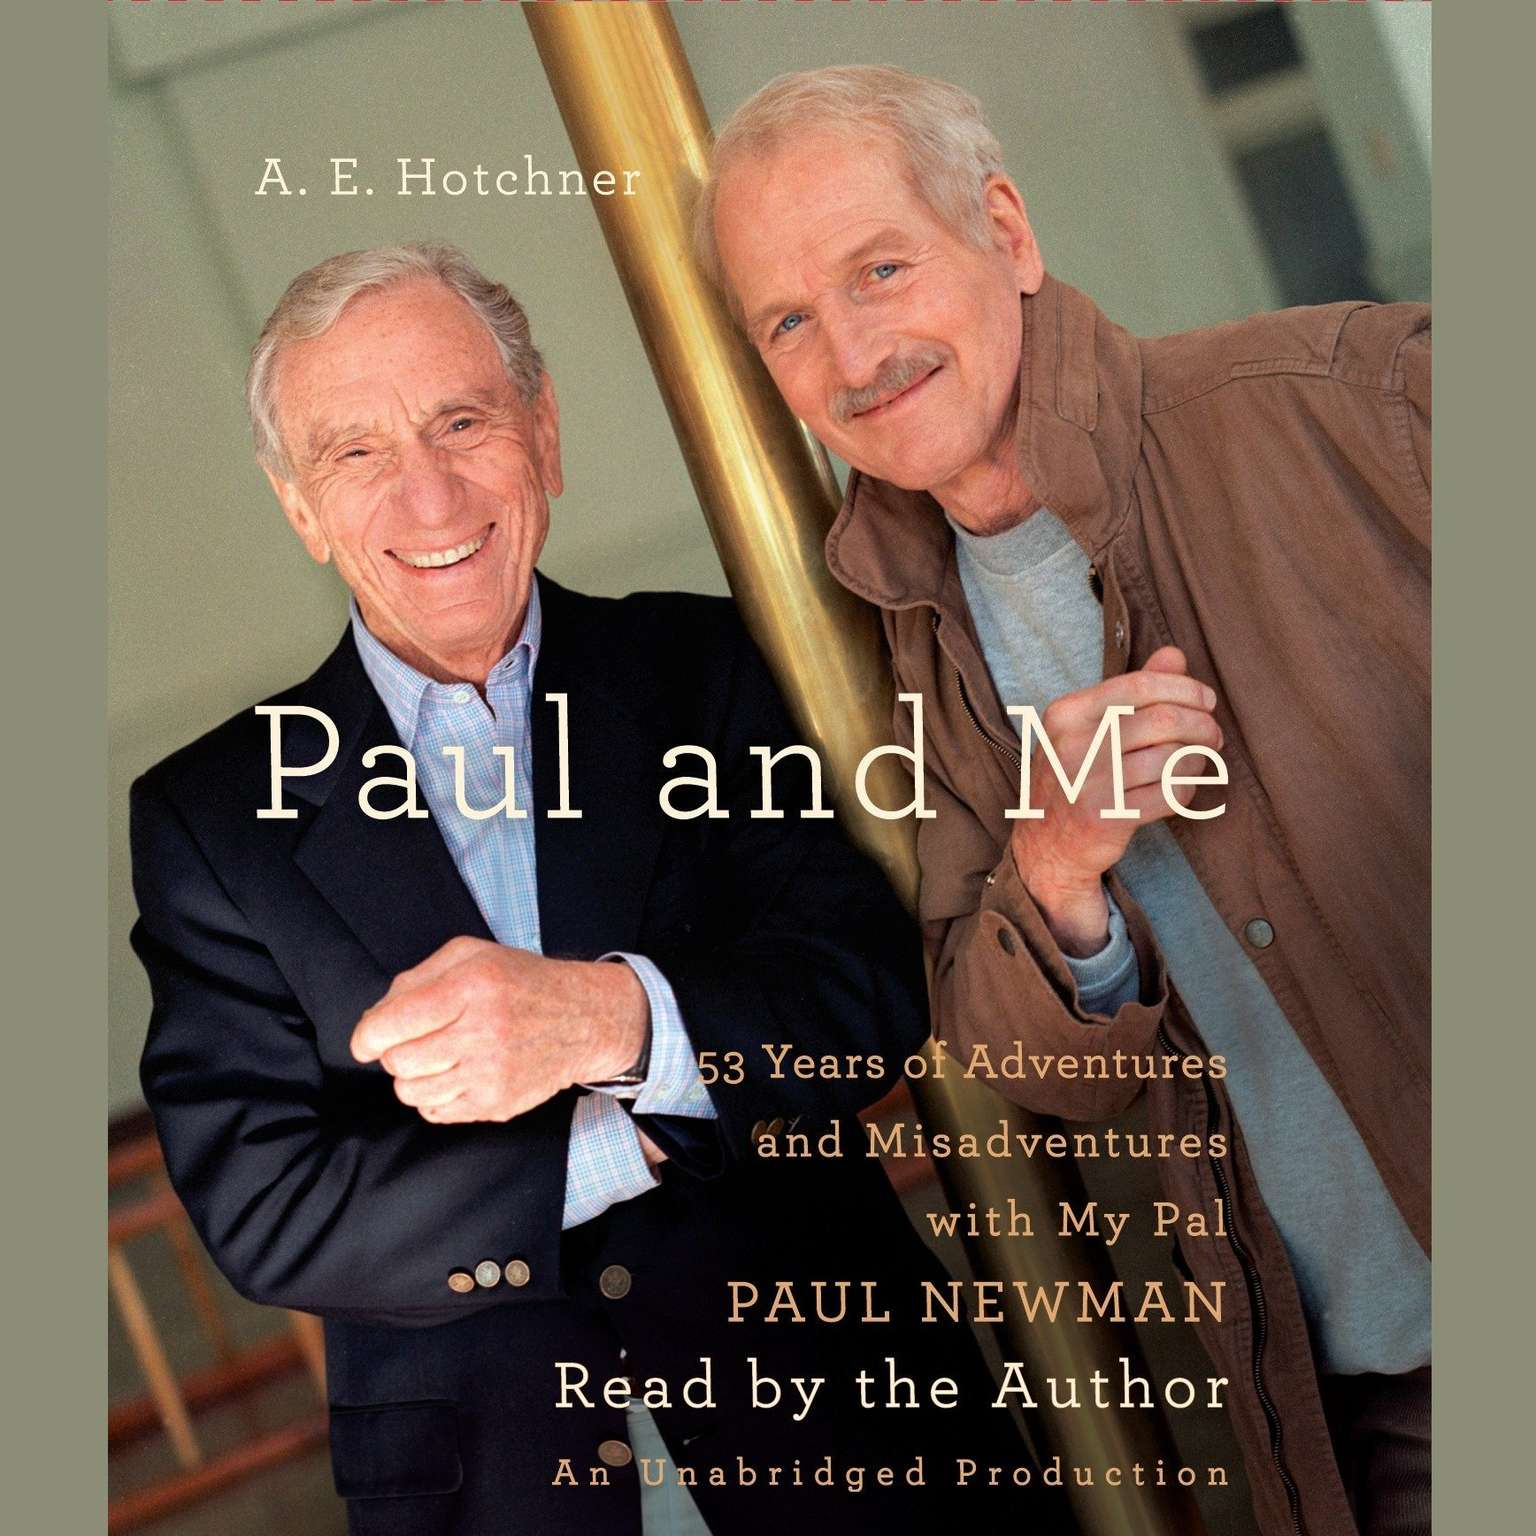 Printable Paul and Me: 53 Years of Adventures and Misadventures with My Pal Paul Newman Audiobook Cover Art